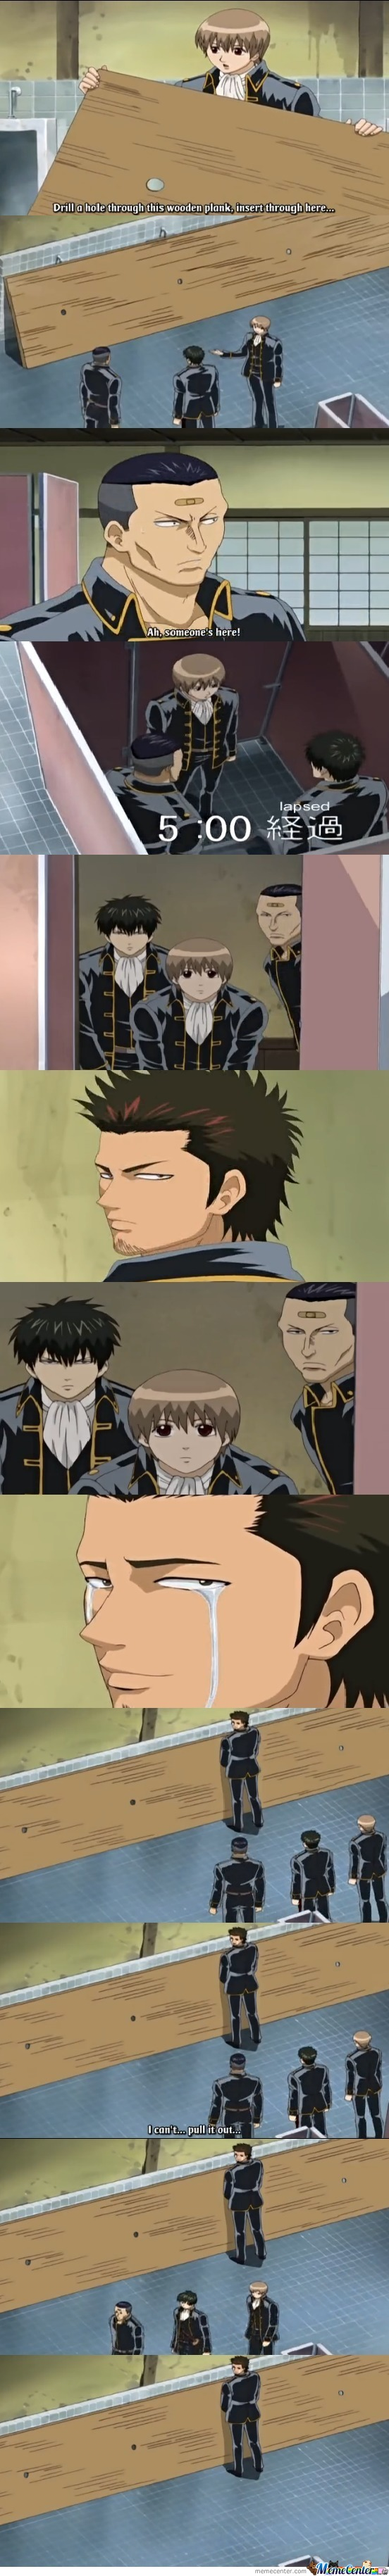 Just Normal Scene In Gintama Xd